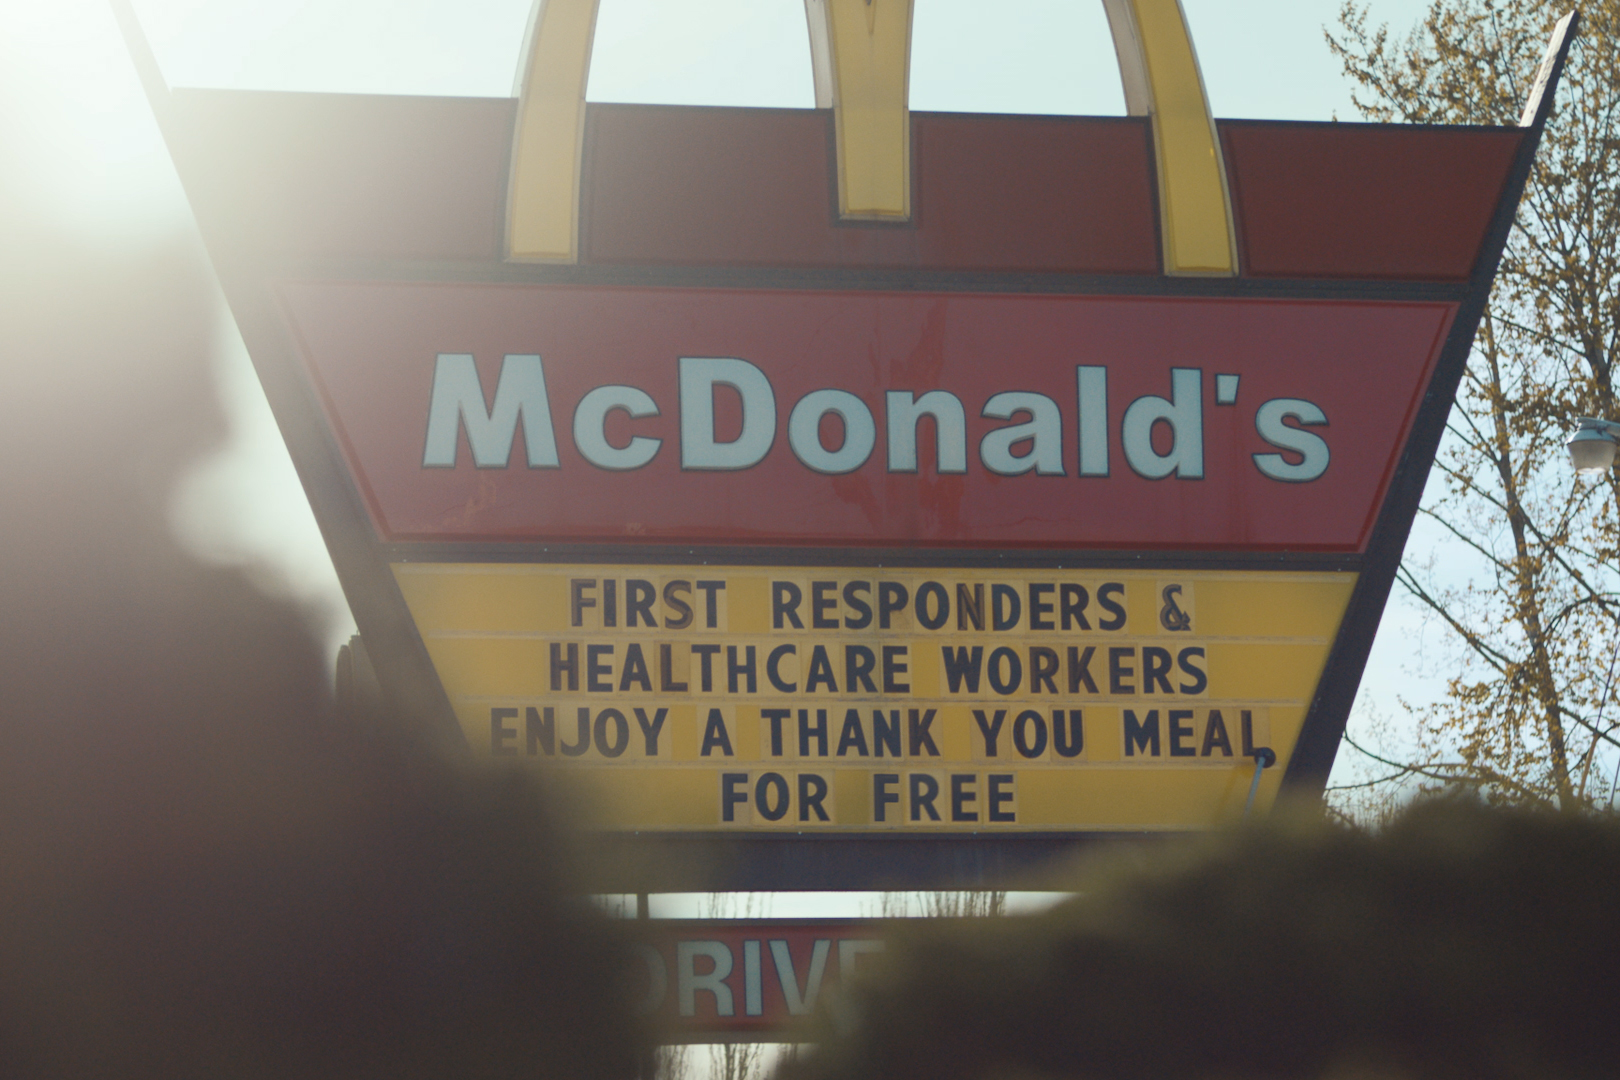 McDonald's promotes 'Thank You Meals' for first responders and Earth Day campaigns go virtual: Wednesday Wake-Up Call